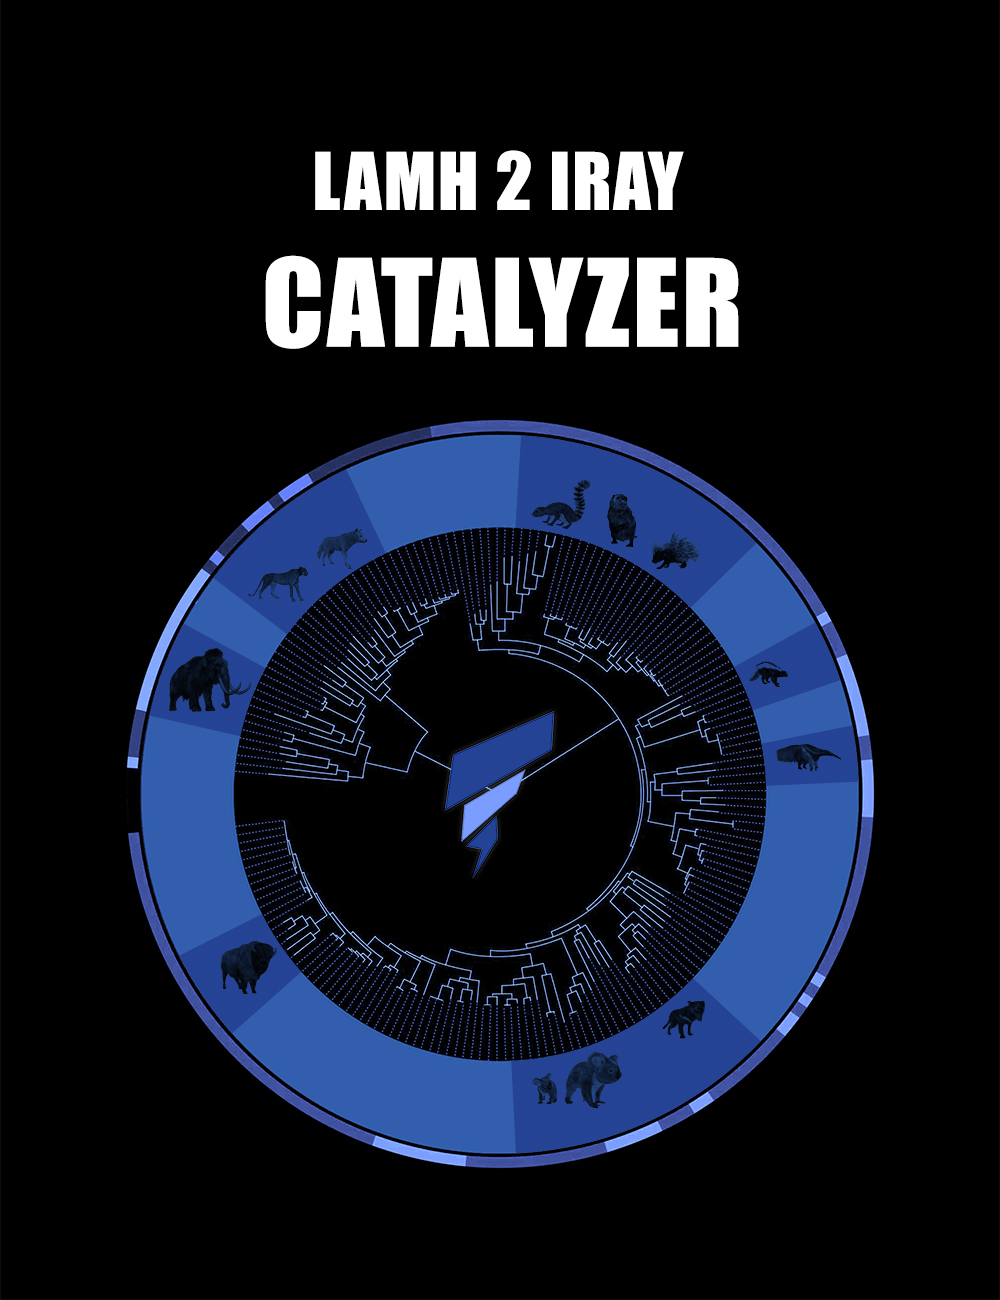 LAMH 2 Iray Catalyzer by: Alessandro_AM, 3D Models by Daz 3D